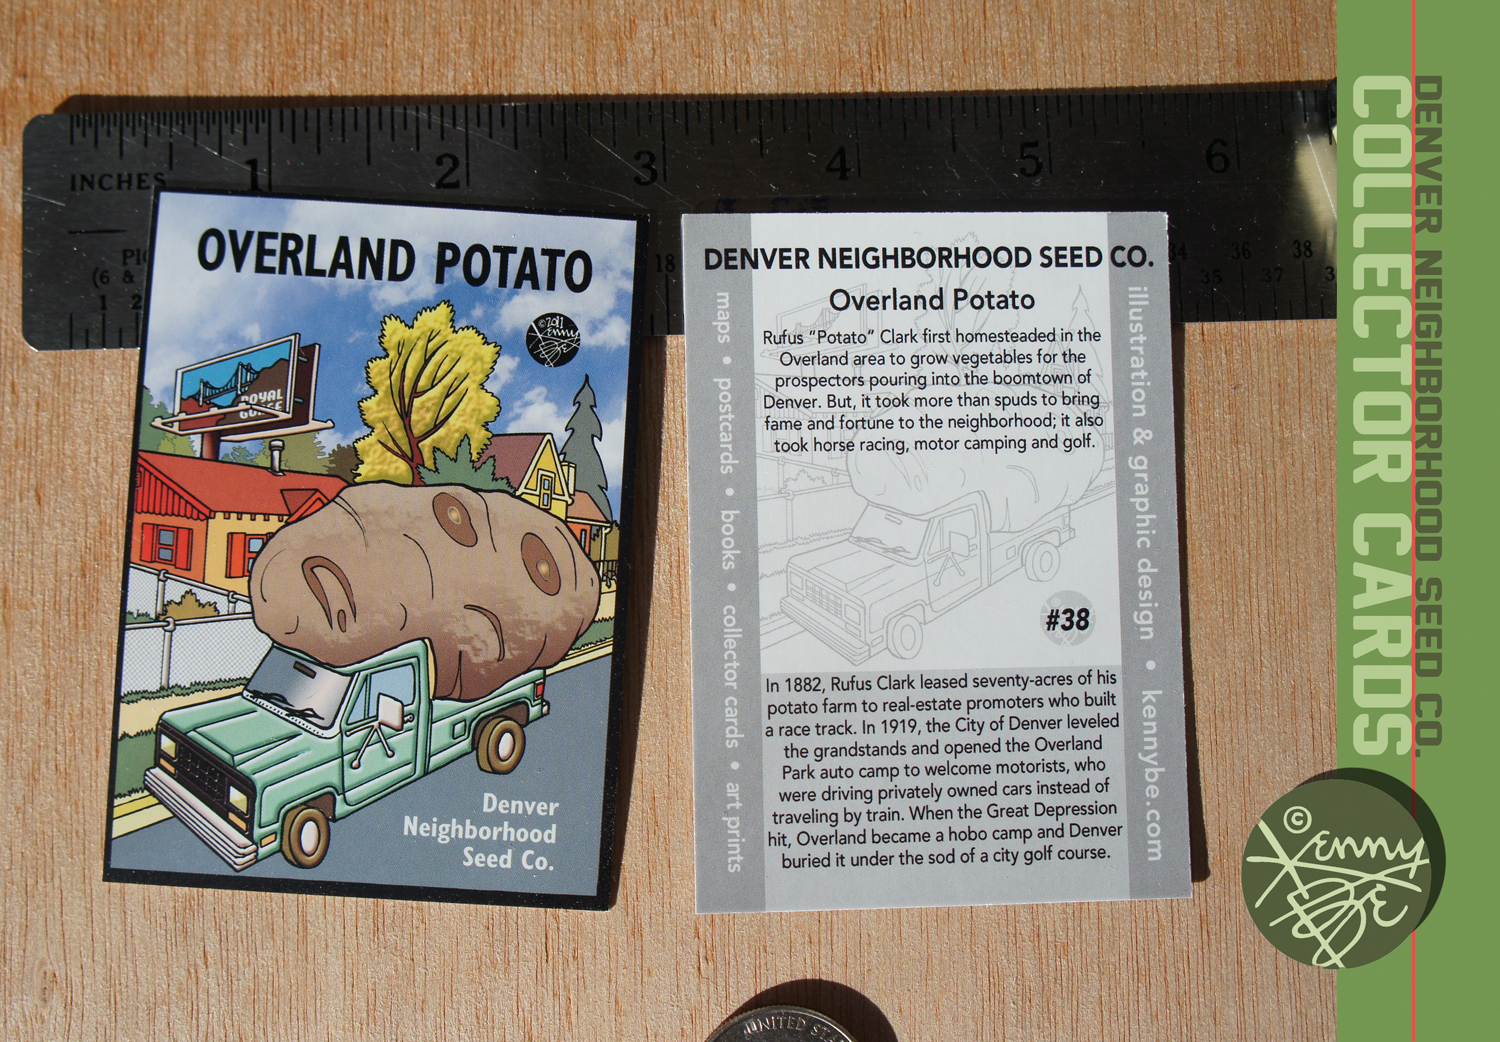 The Overland Potato story is told on the flip side of the Denver Neighborhood Seed Co. Collector Card #38.